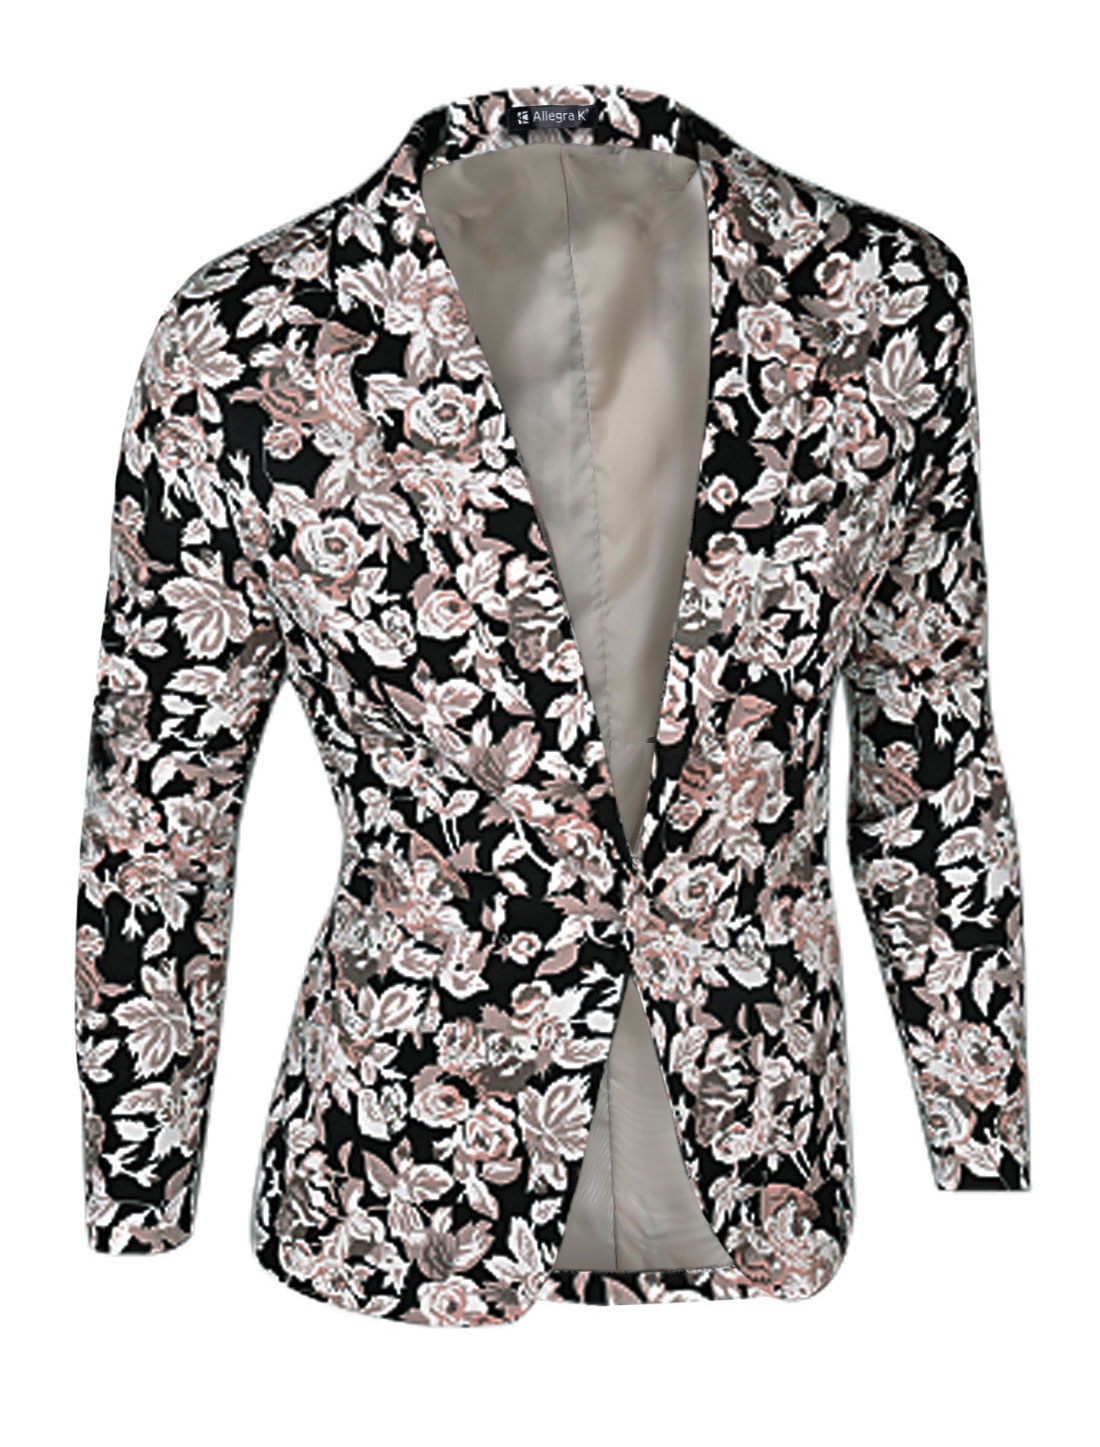 Men Floral Prints Long Sleeves One-Button Casual Blazer Jacket Black M